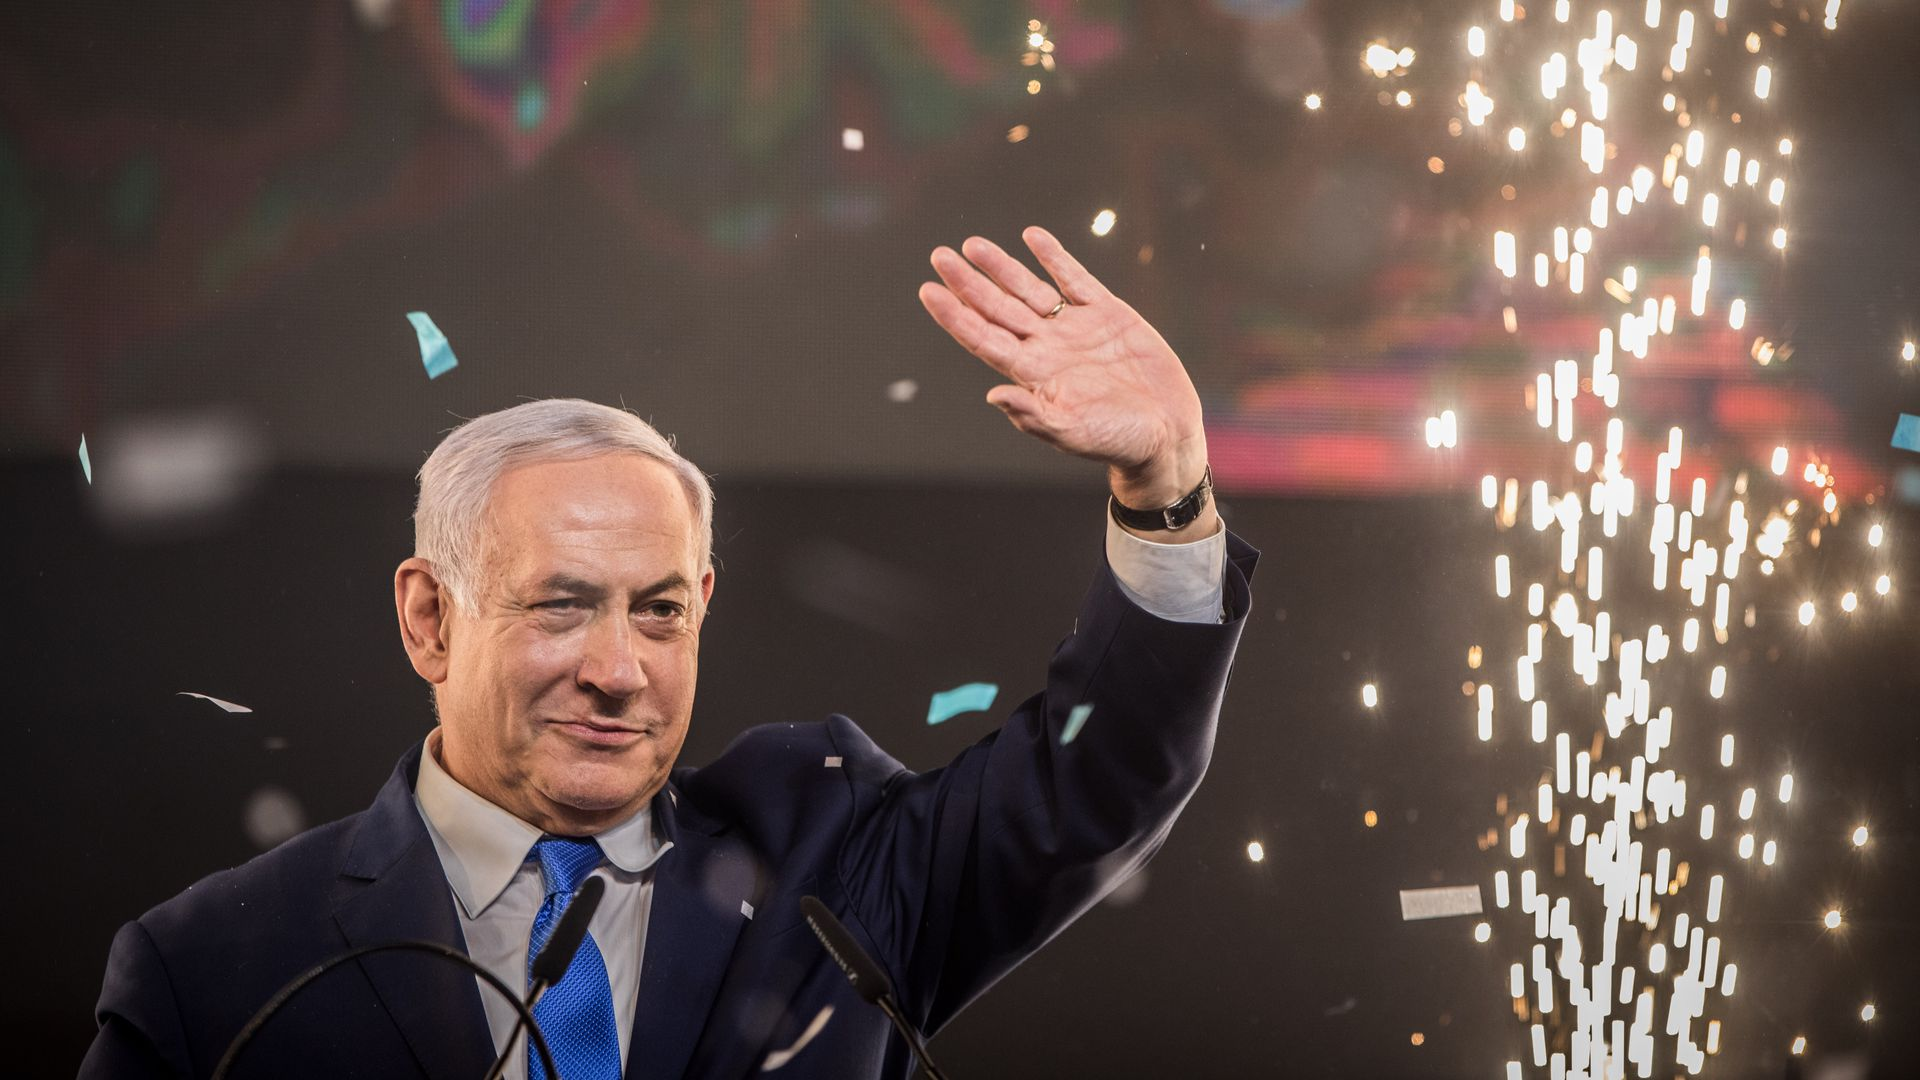 6 things you need to know about Benjamin Netanyahu's Israeli election victory